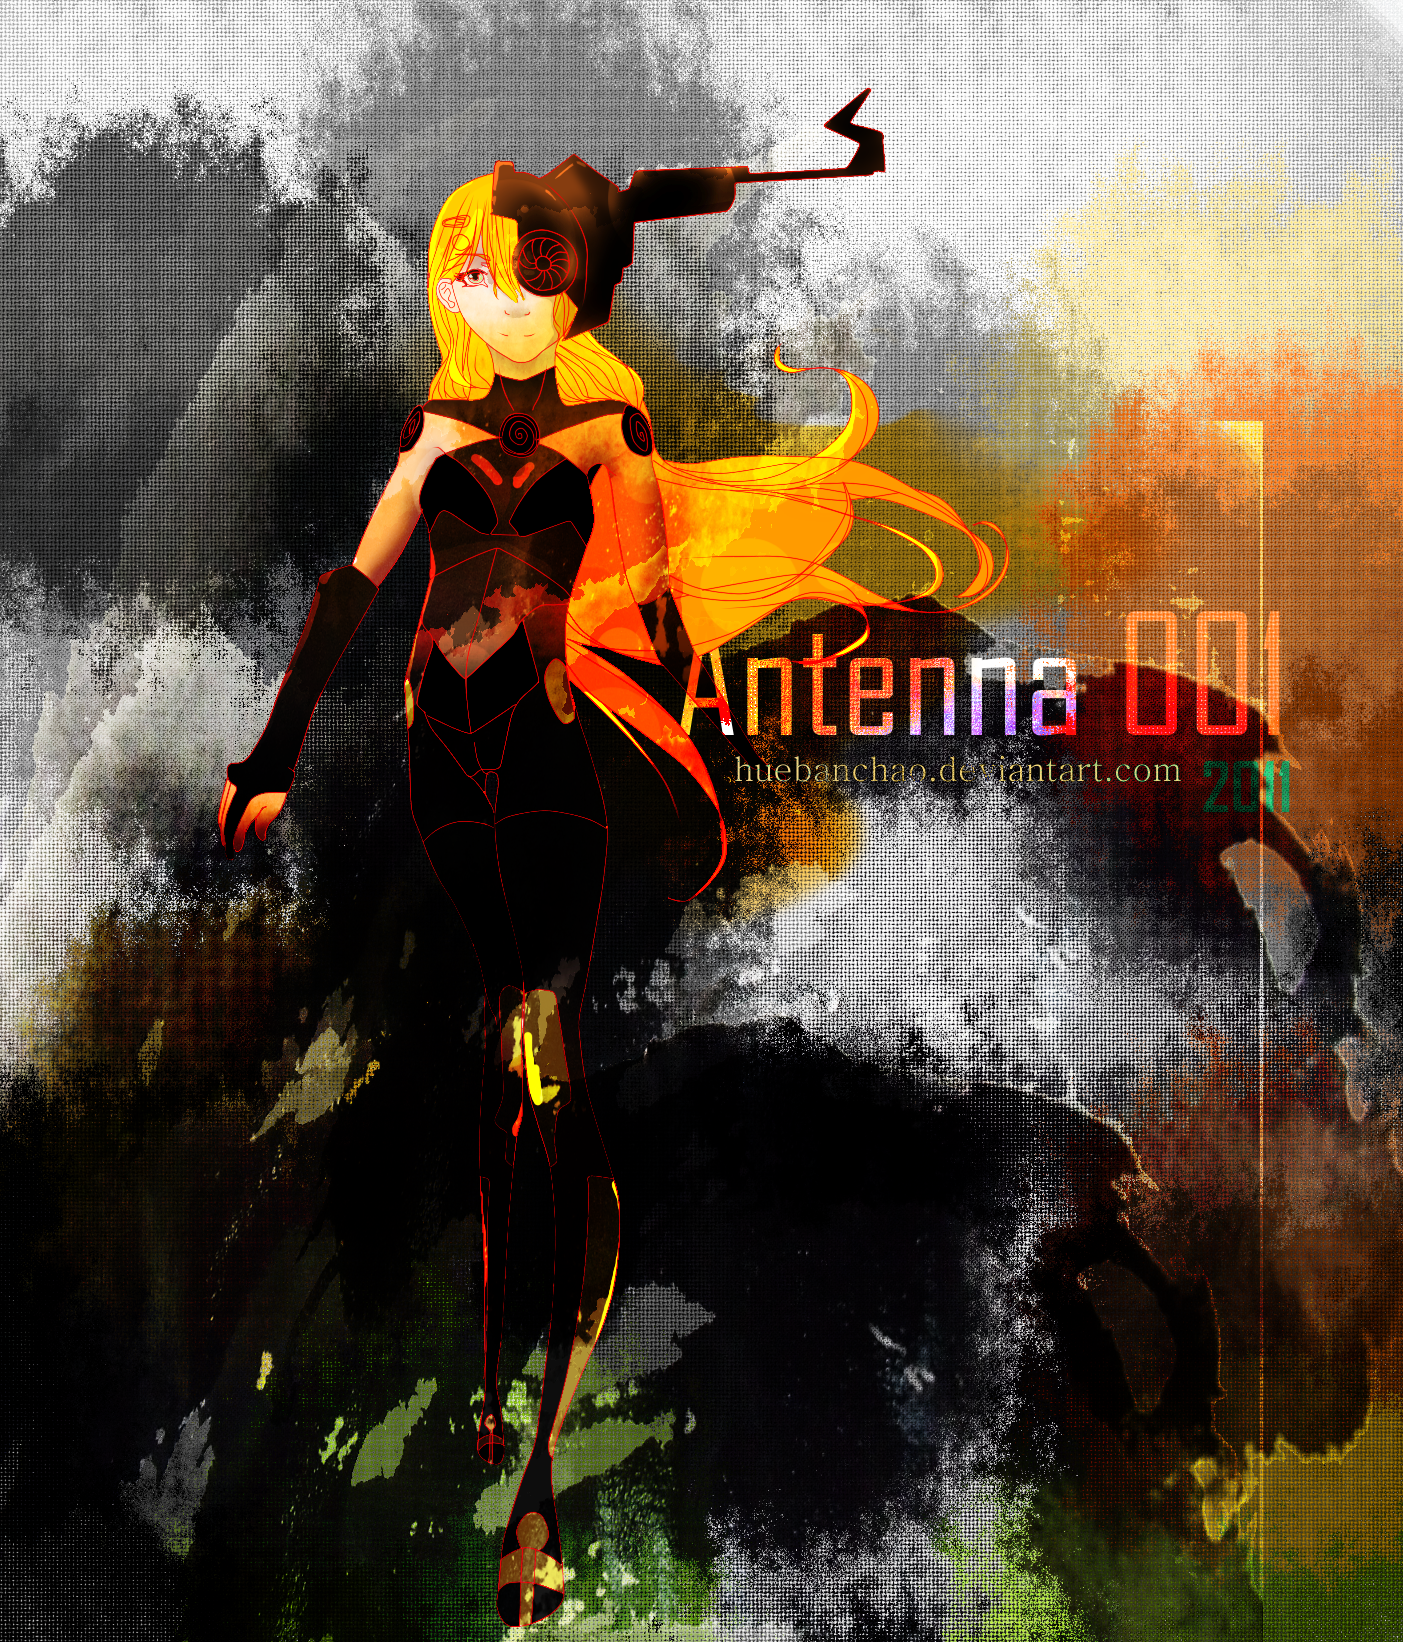 Antenna 001 by huebanchao